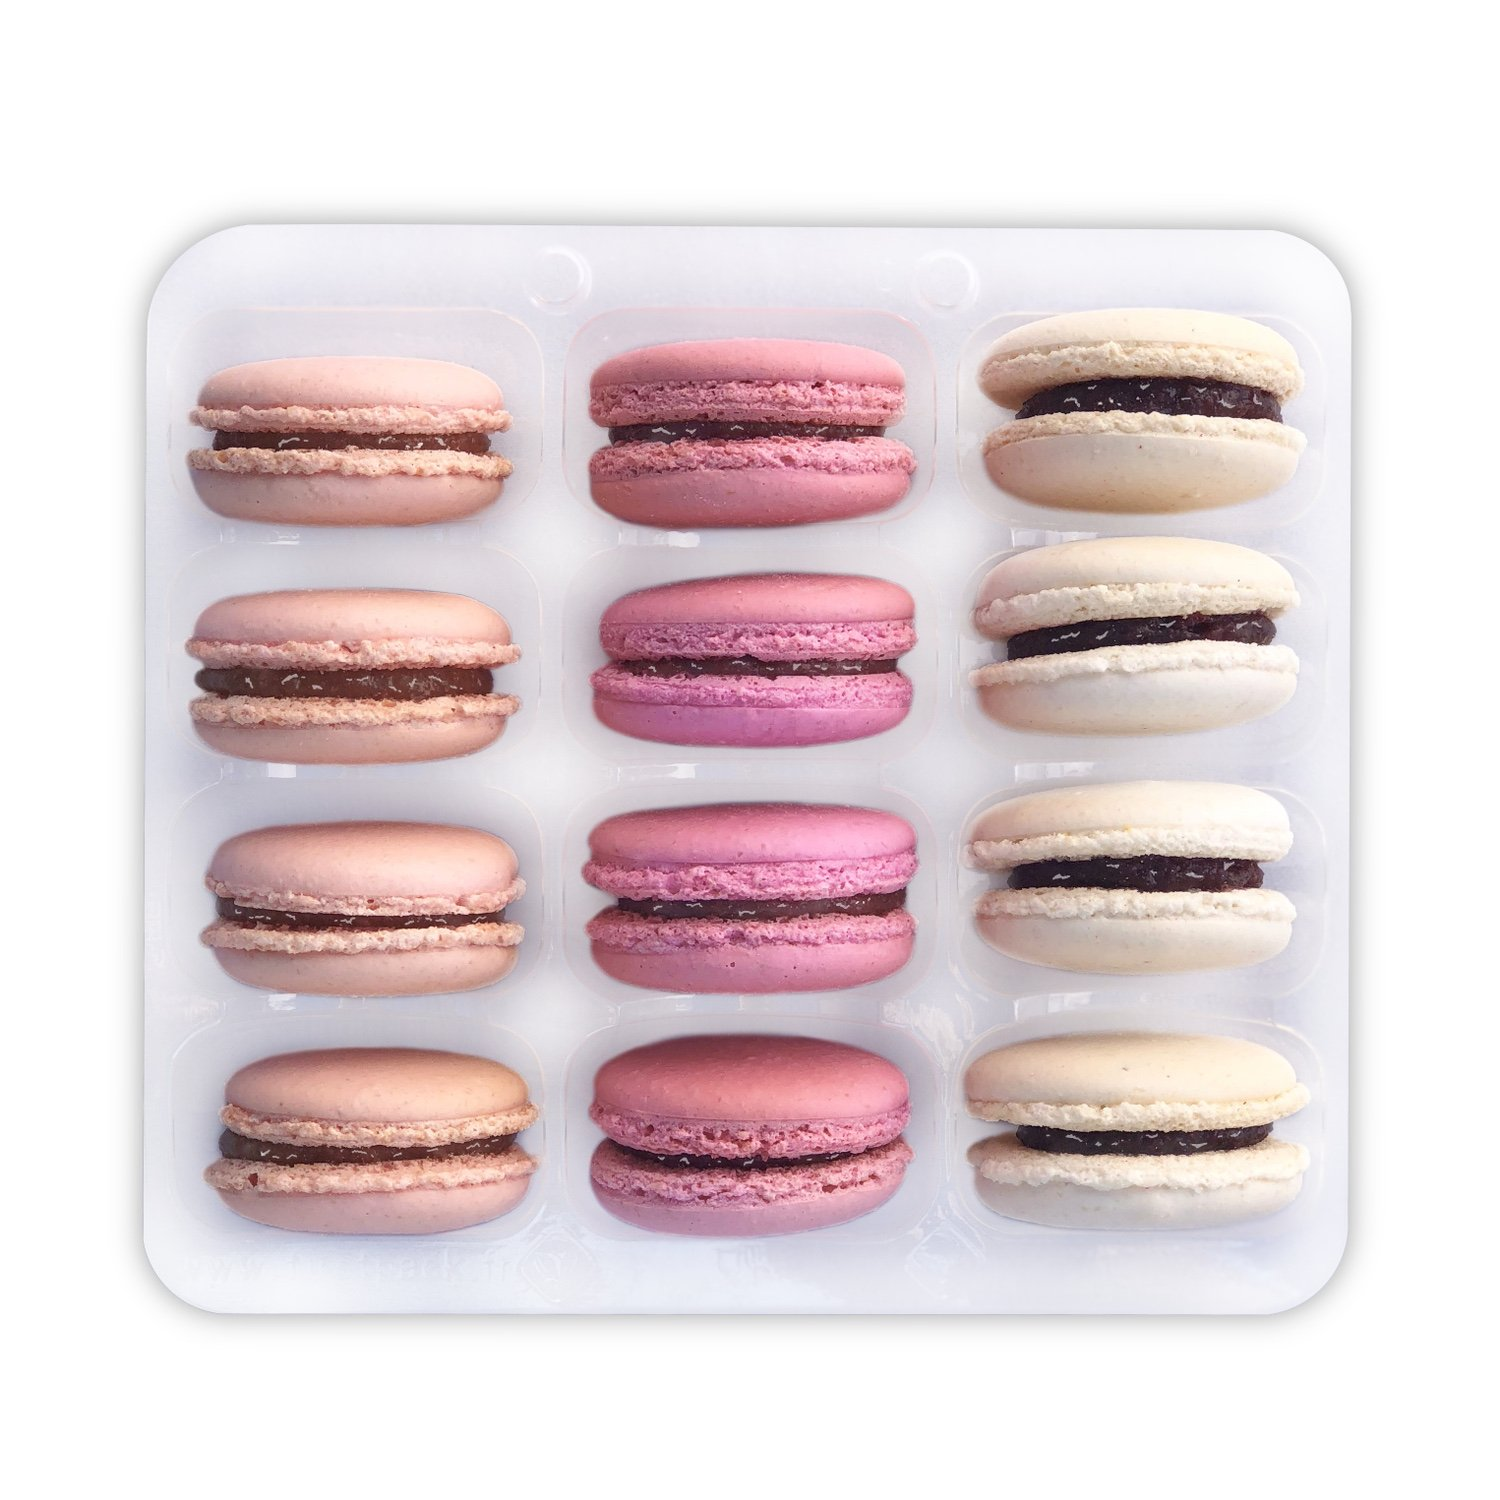 Pink Macarons Assortment - Baby Shower Macaroons - It's a Girl - French Cookies Set - Gluten free - Dairy free (12 Macarons)